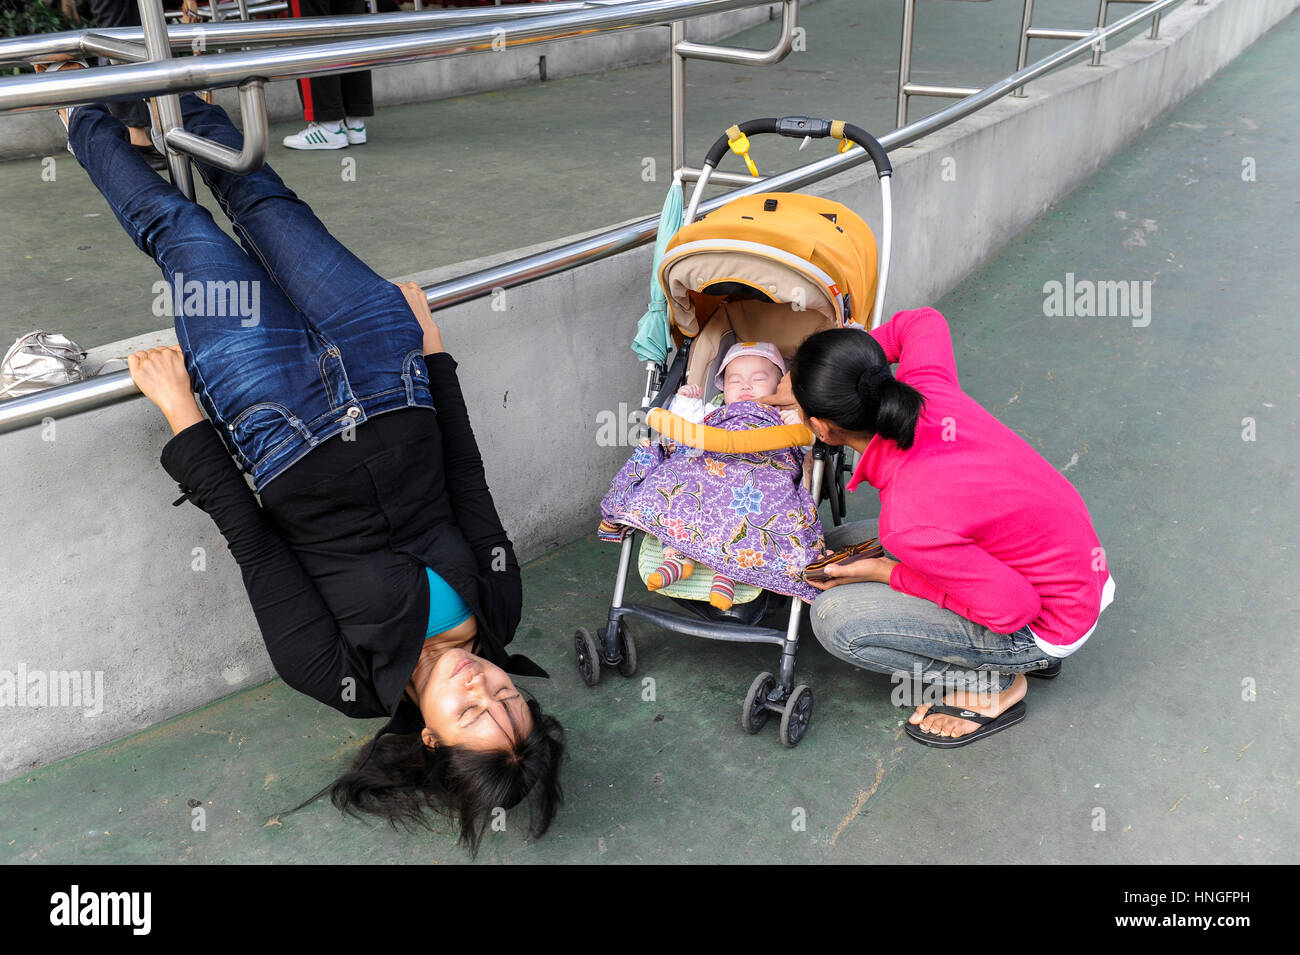 CHINA, Megacity Hong Kong, Kowloon, people doing exercise in public park, infant in baby chair wagon - Stock Image